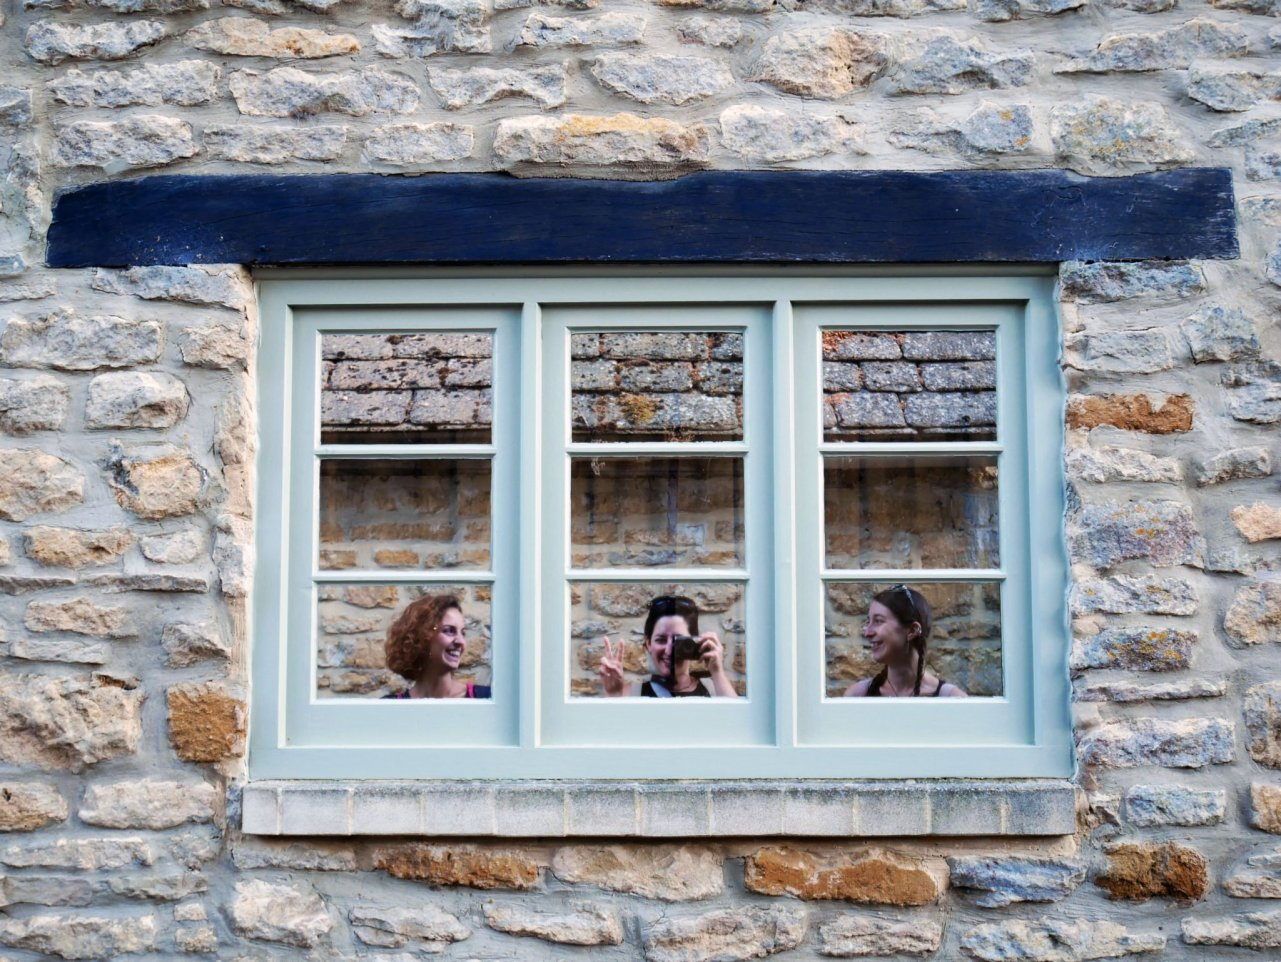 Alla finestra nelle Cotswolds